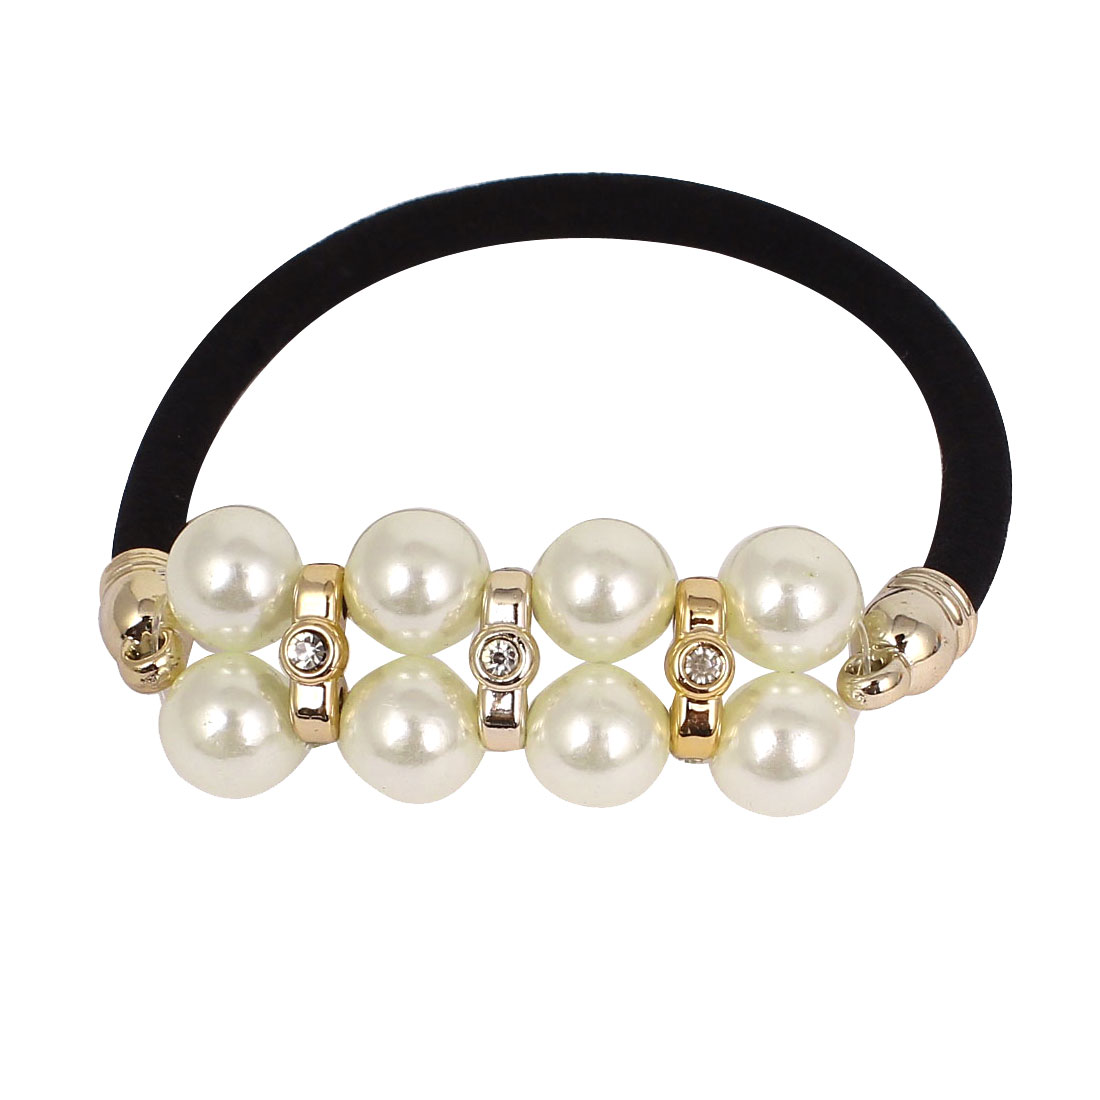 Black White Imitation Pearl Sparkly Rhinestone Inlaid Ornament Elastic Band Ponytail Holder for Lady